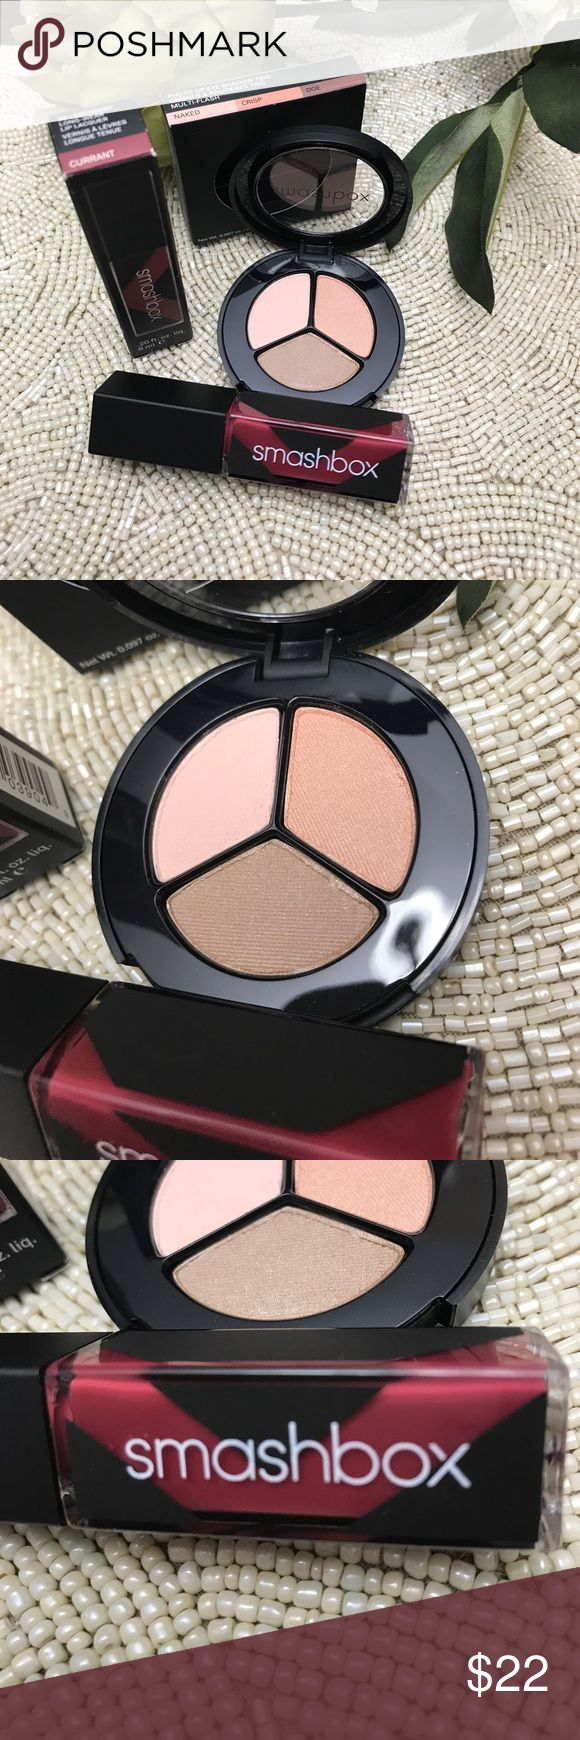 """Smashbox eyeshadow and lip lacquer bundle Brand new and 100% authentic • never used • eyeshadow trio and long wear lip lacquer in the shade """" currant"""" Sephora Makeup"""